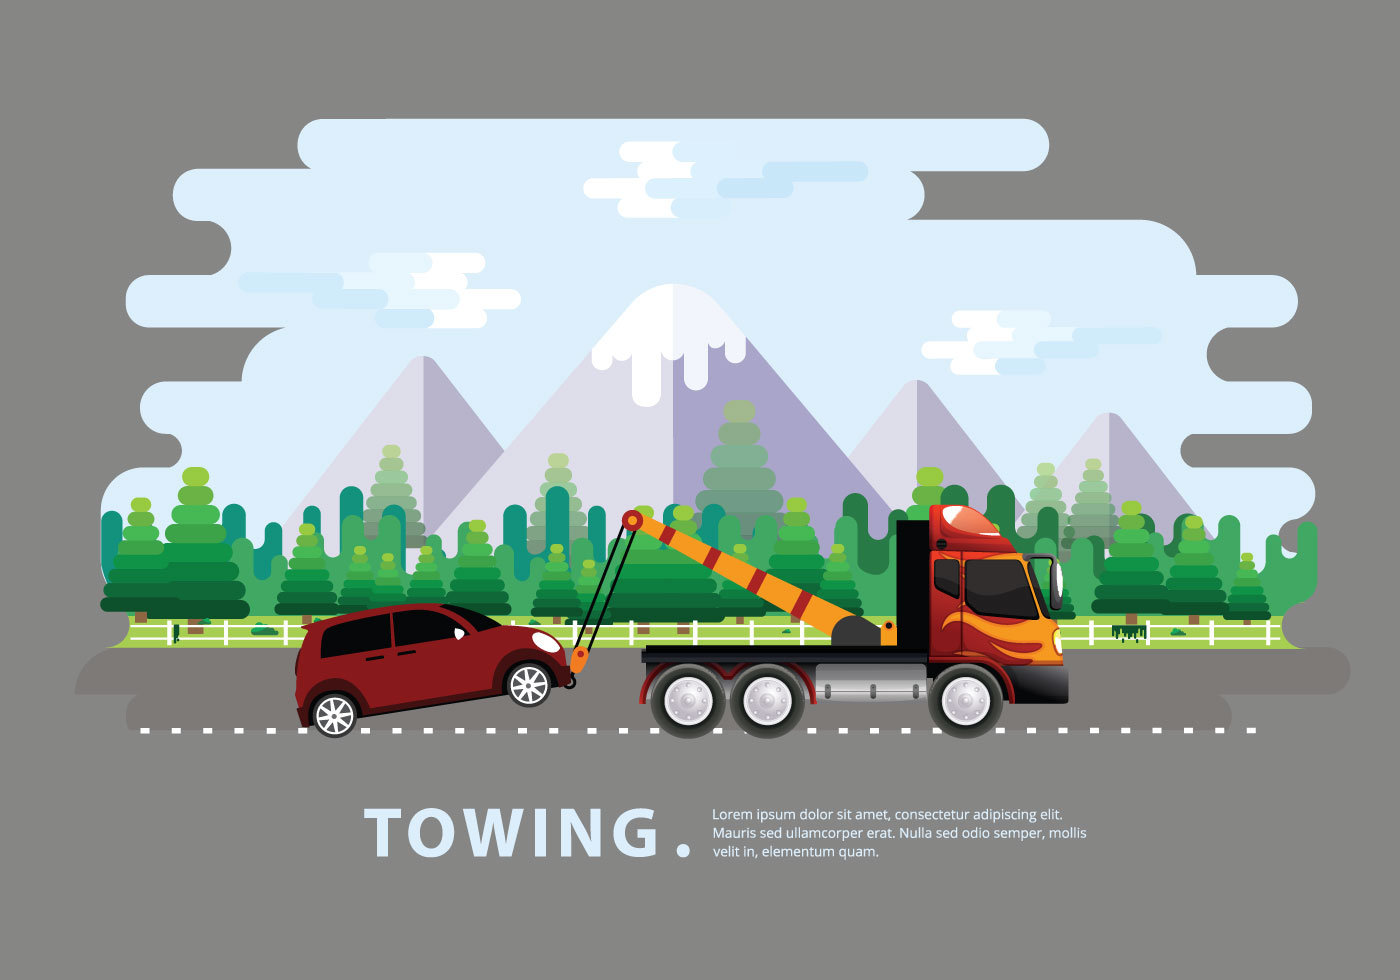 Towing Truck Service Vector Flat Illustration Download Free Vector Art Stock Graphics Amp Images